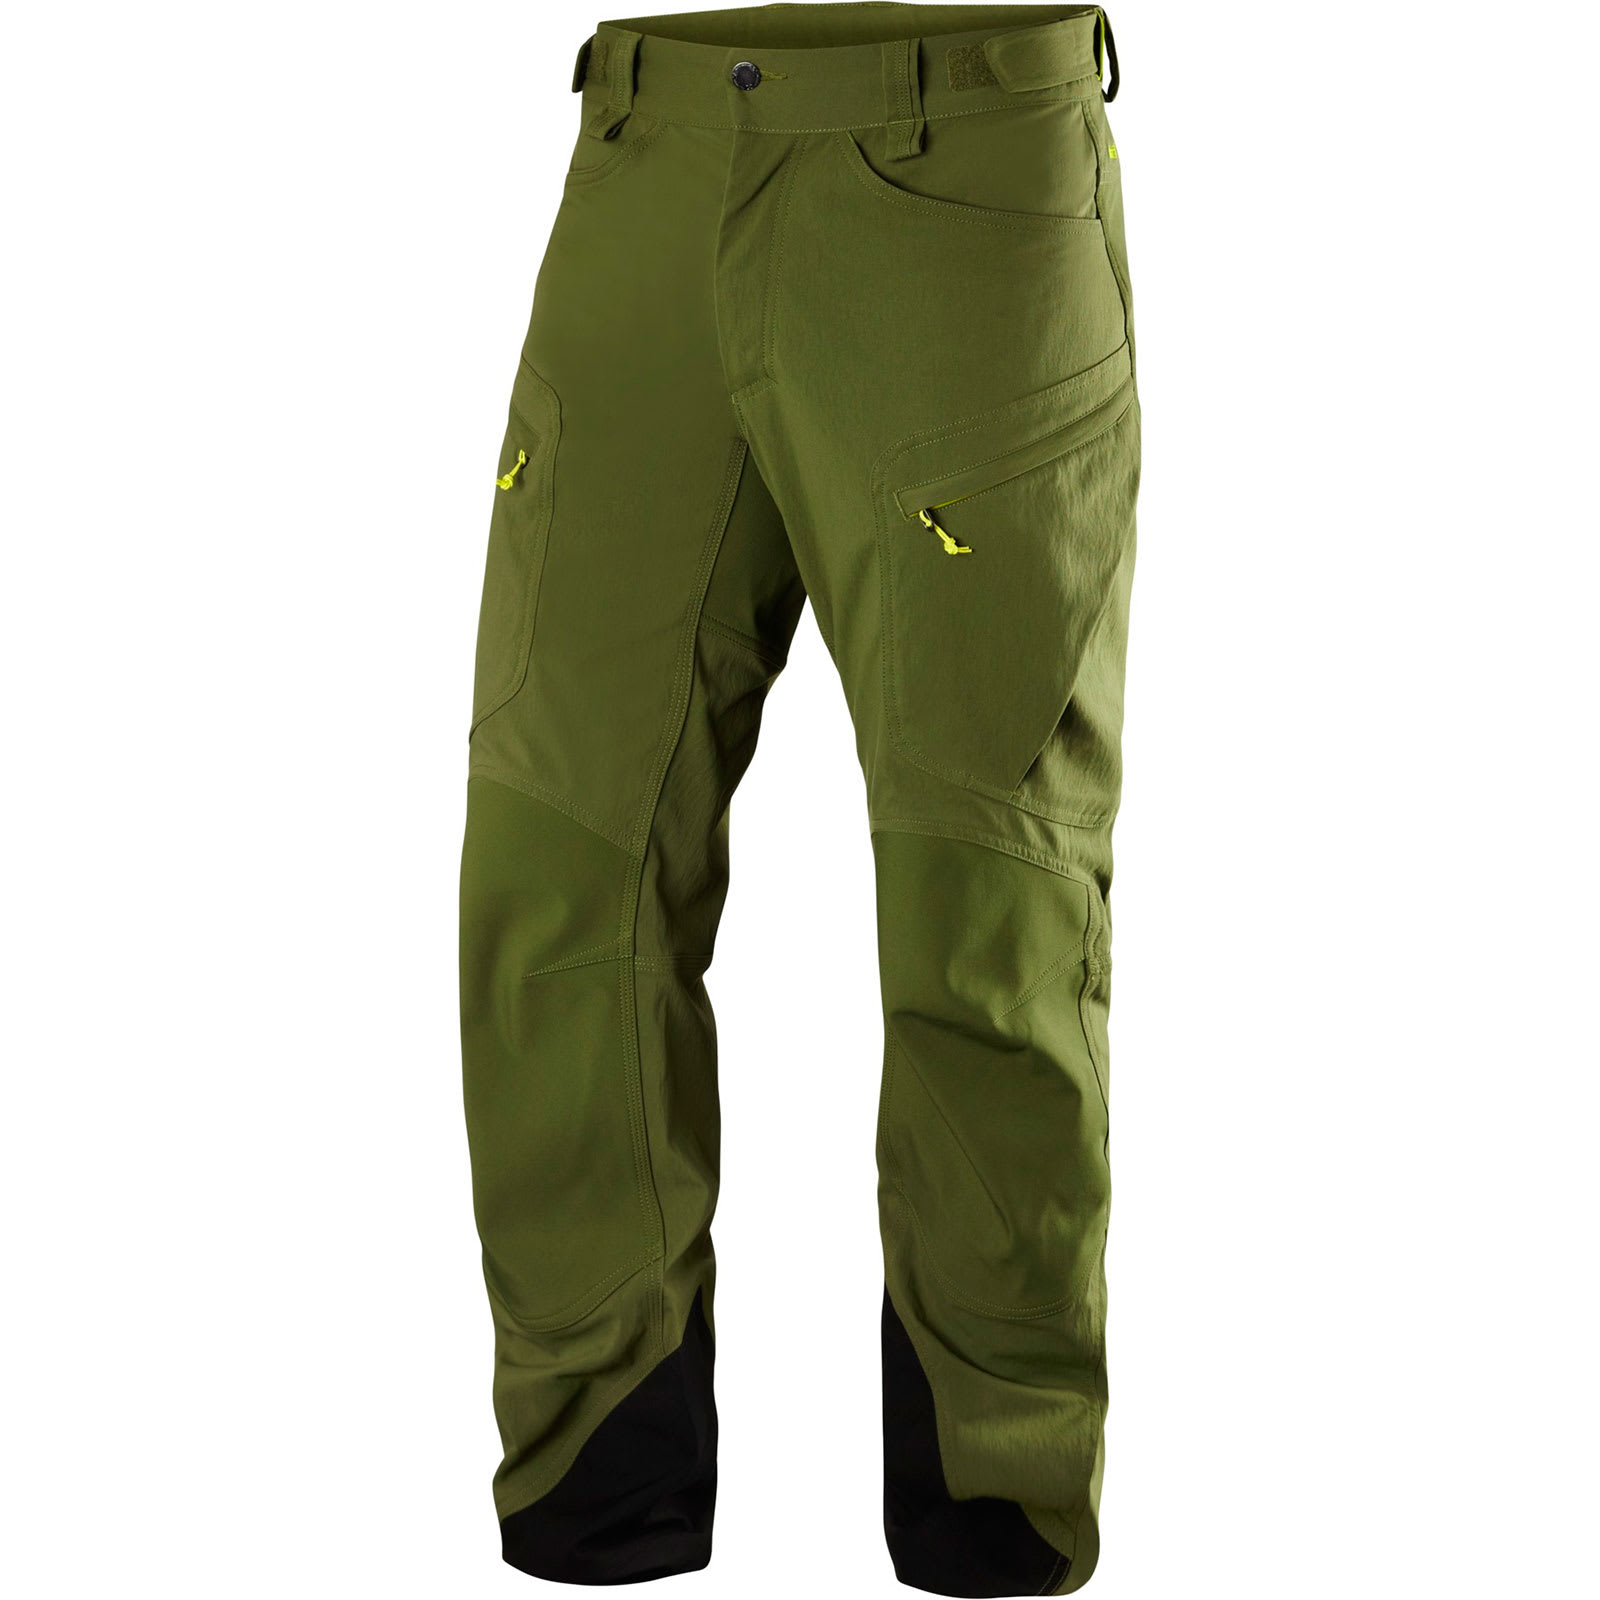 Buy Haglofs Rugged Ii Mountain Pant From Outnorth